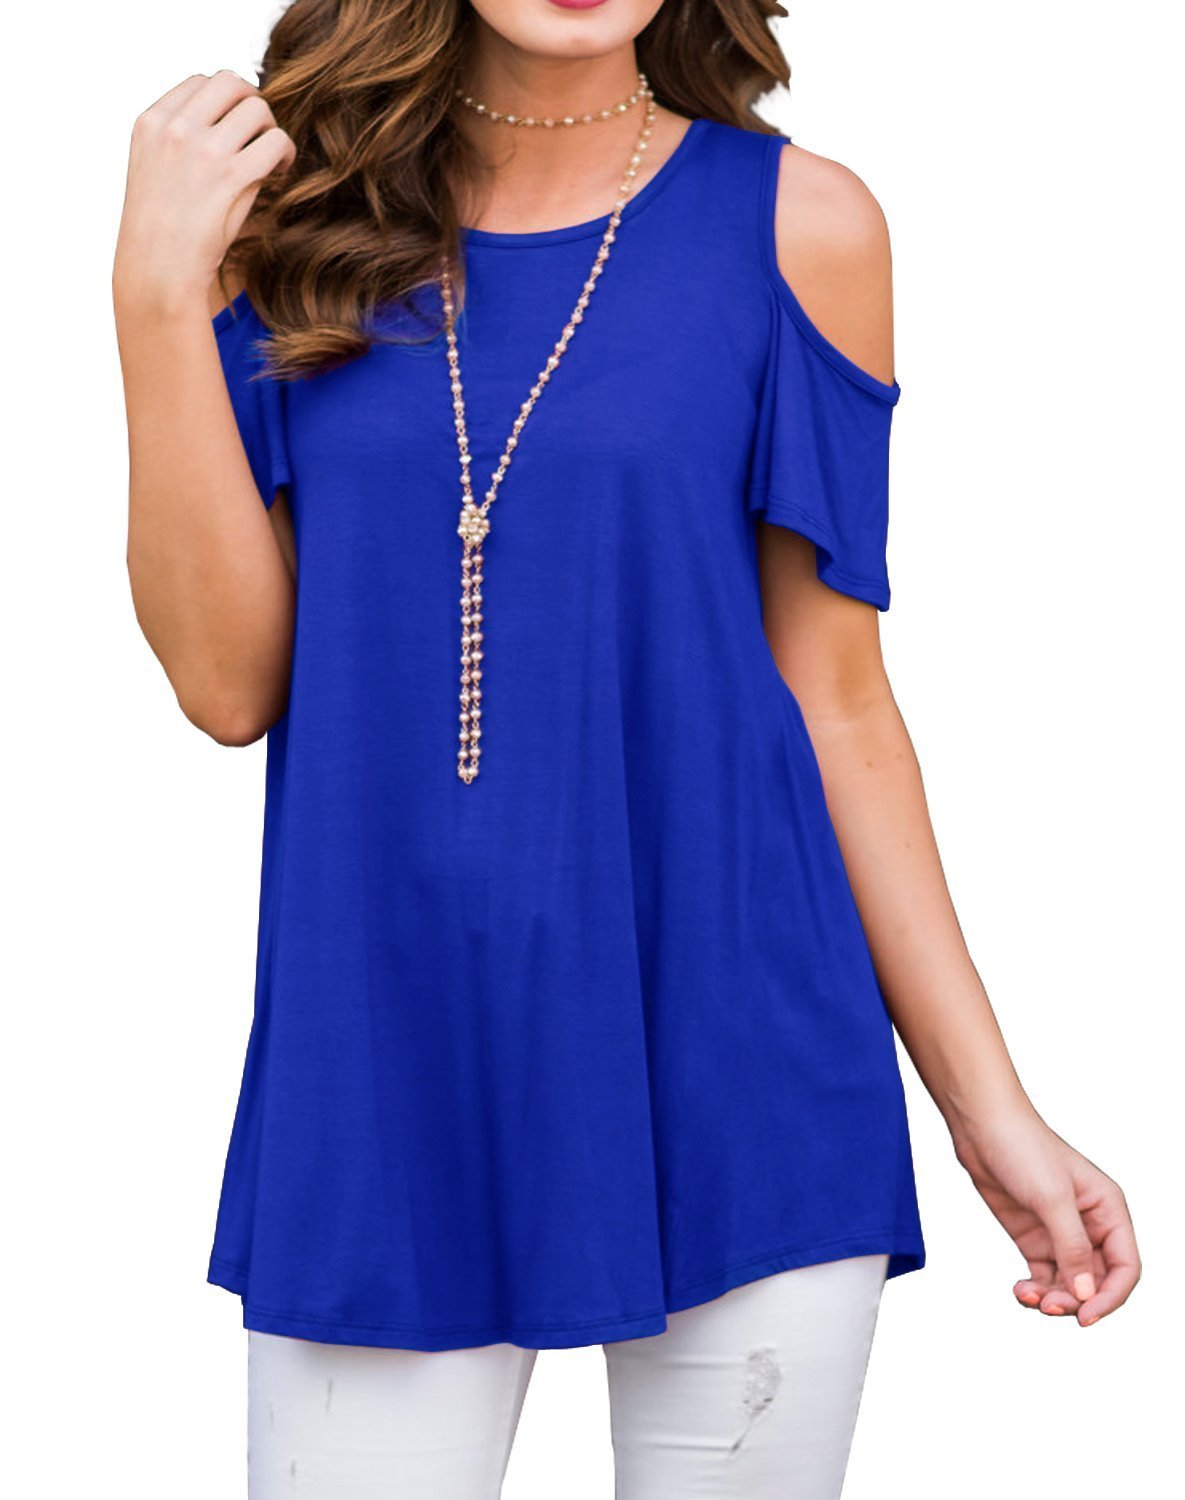 UniDear Women's Short Sleeve Casual Cold Shoulder Tunic Tops Loose Blouse T-Shirts Royal Blue L